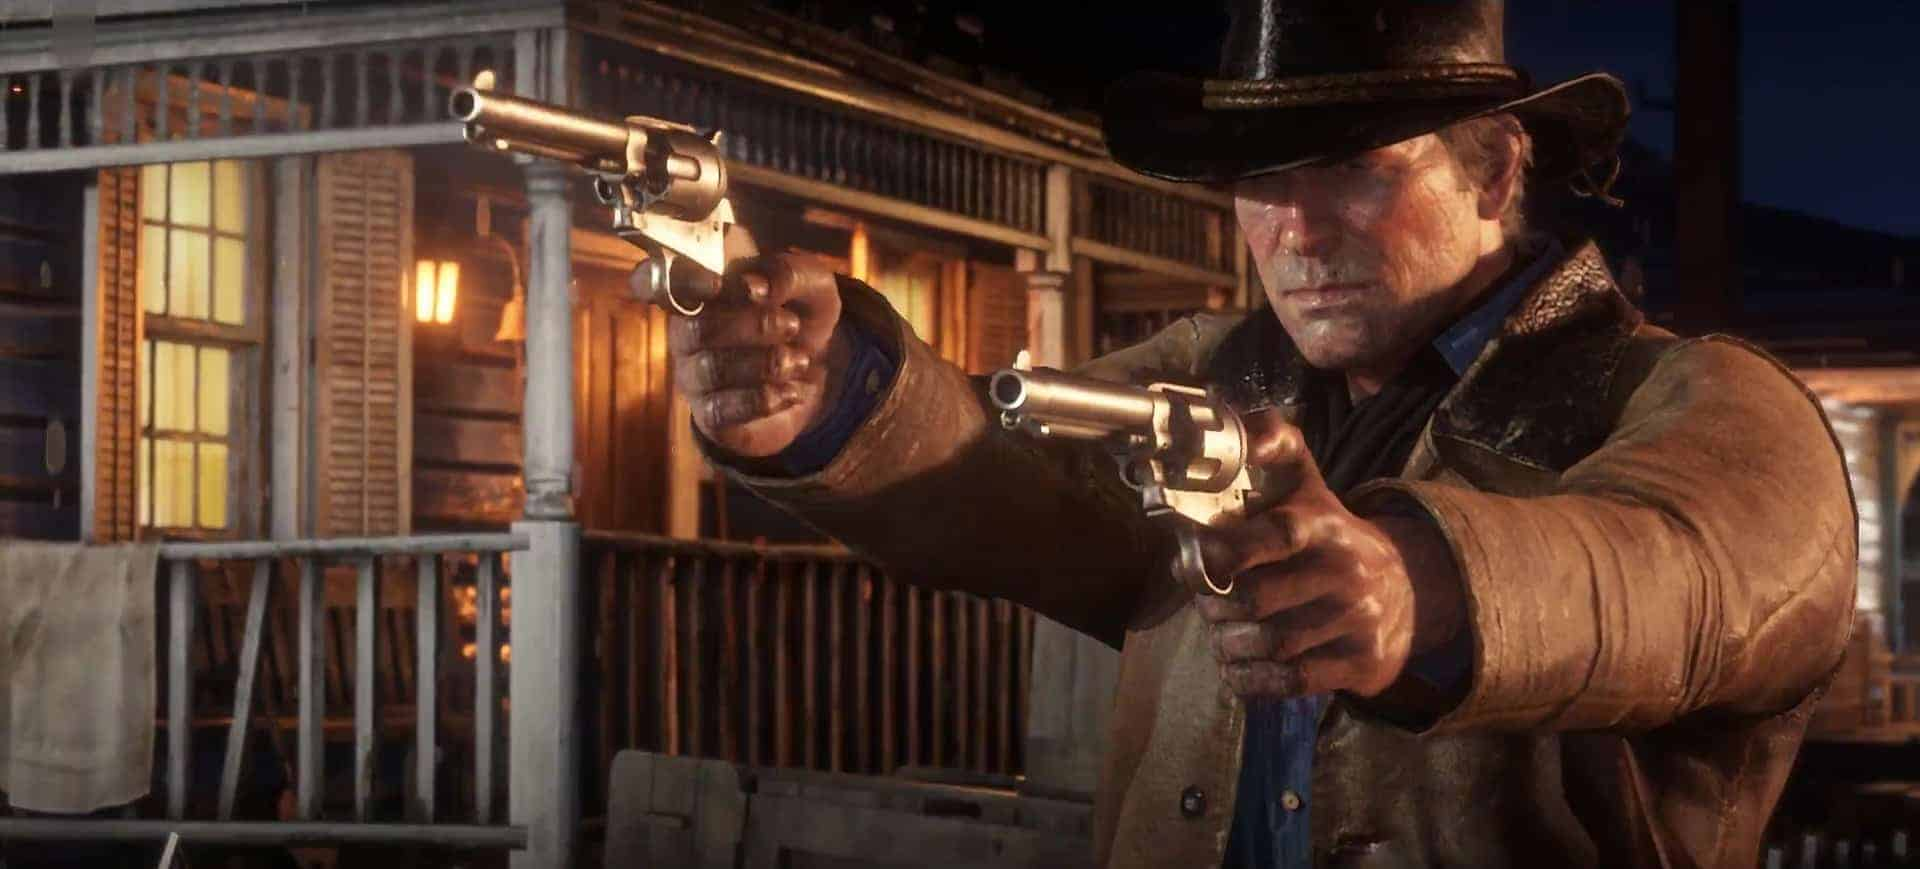 Don't Expect GTA Online To Lose Popularity When RDR2 Launches - GTA BOOM